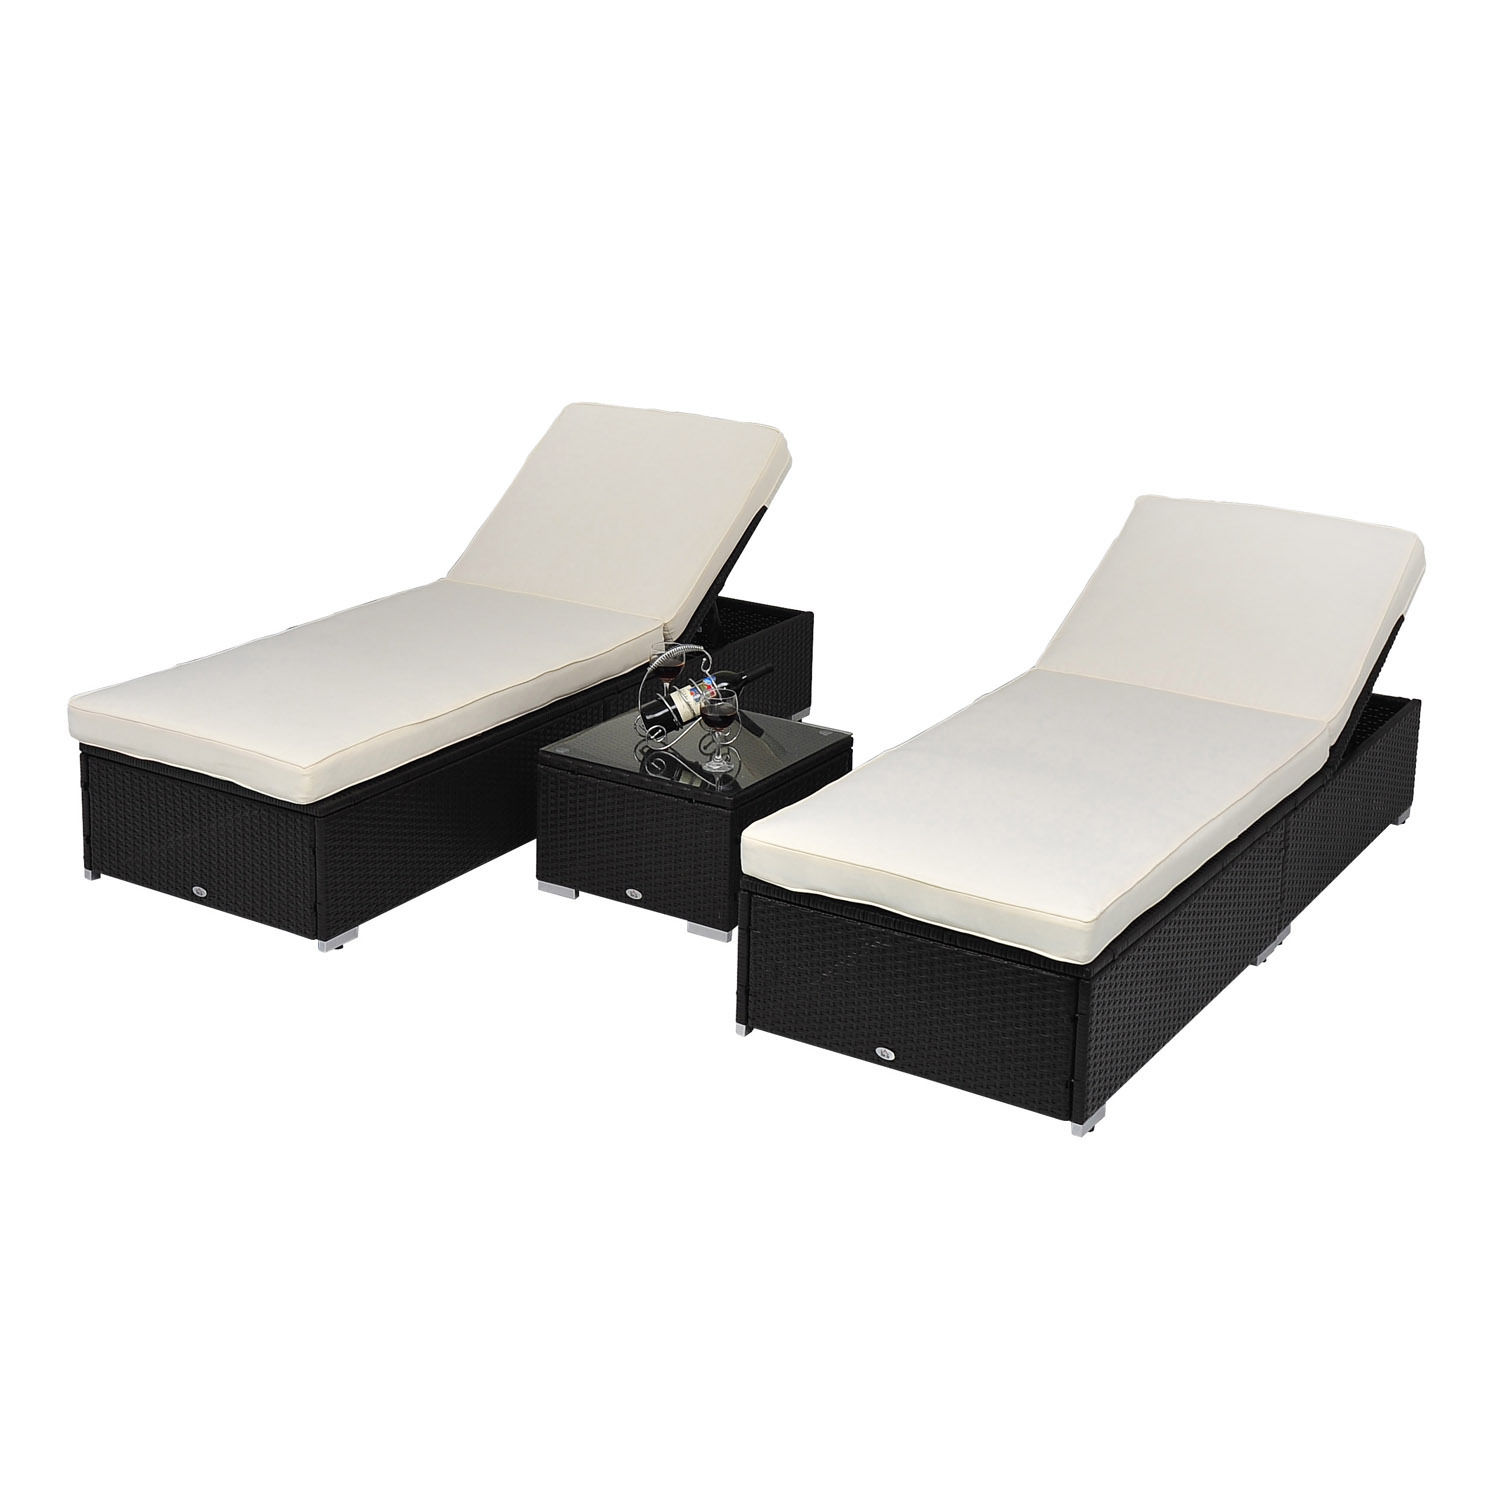 225 & Outsunny Outdoor Patio Synthetic Rattan Wicker 3 pc Chaise Lounge Chair Set w/ Side Table